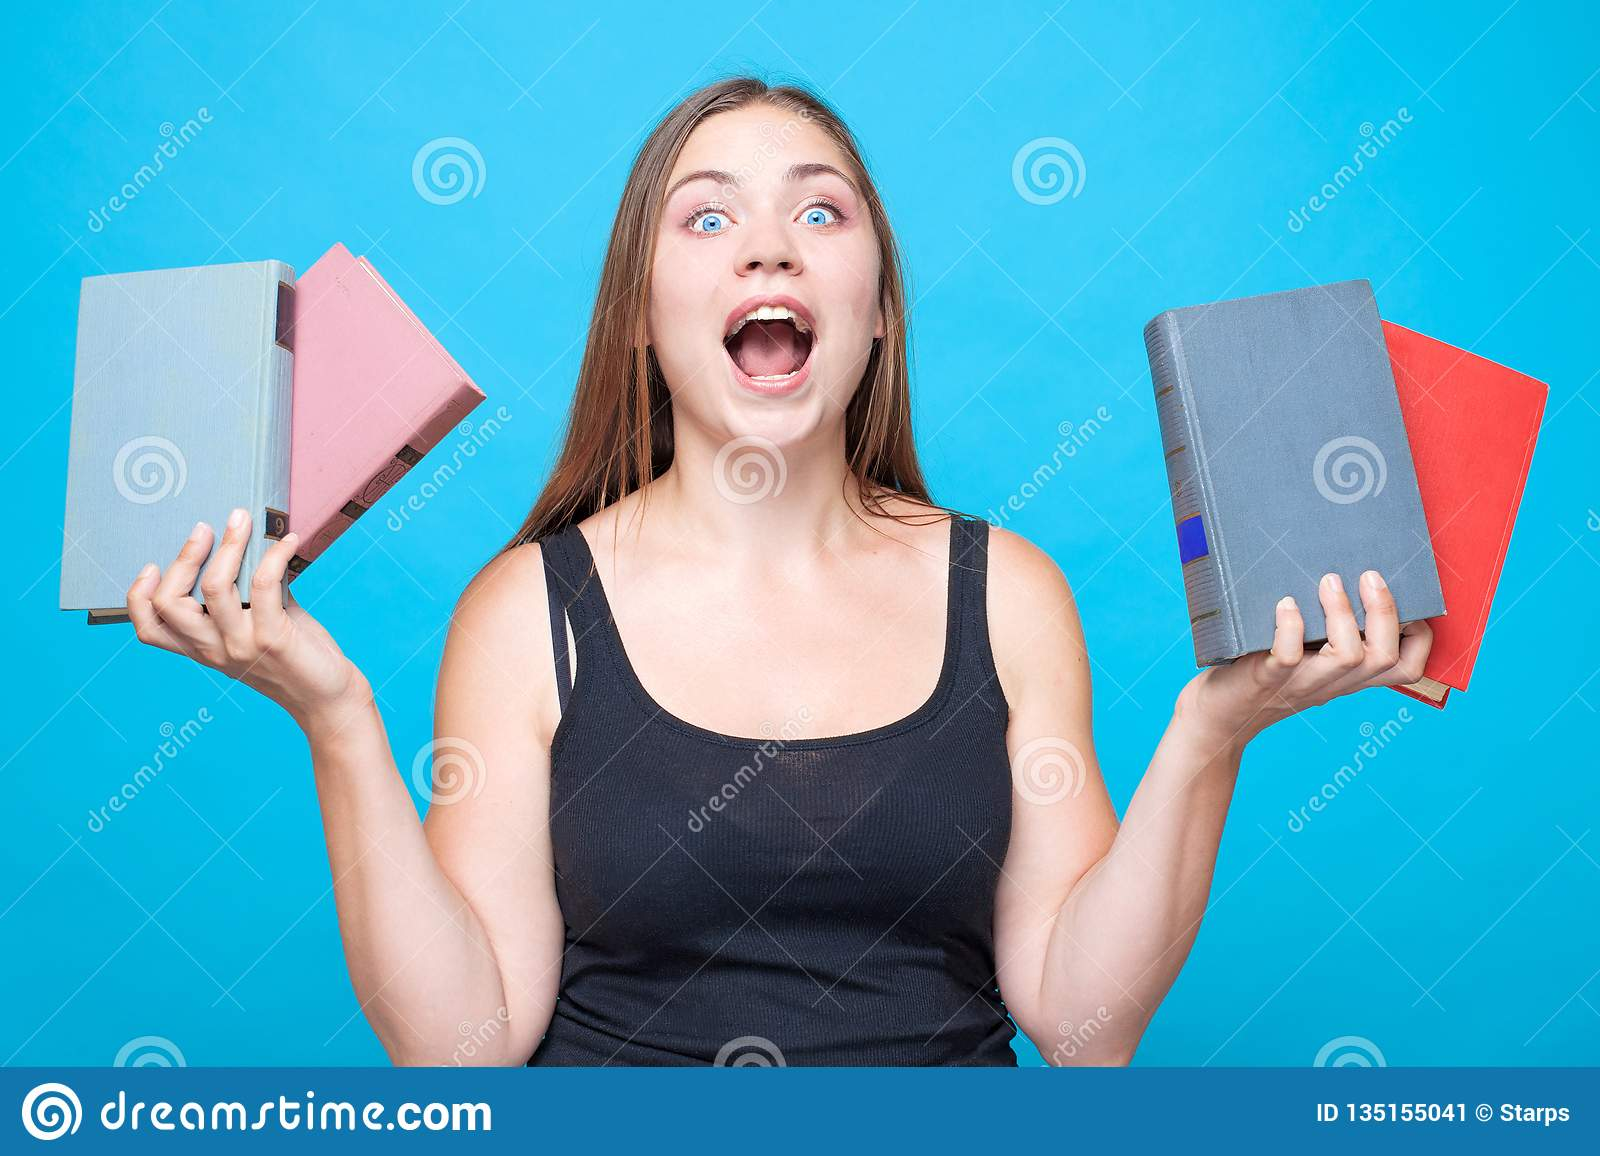 Young pretty woman with 2 books in each hands screams with strong emotions with mouth up.